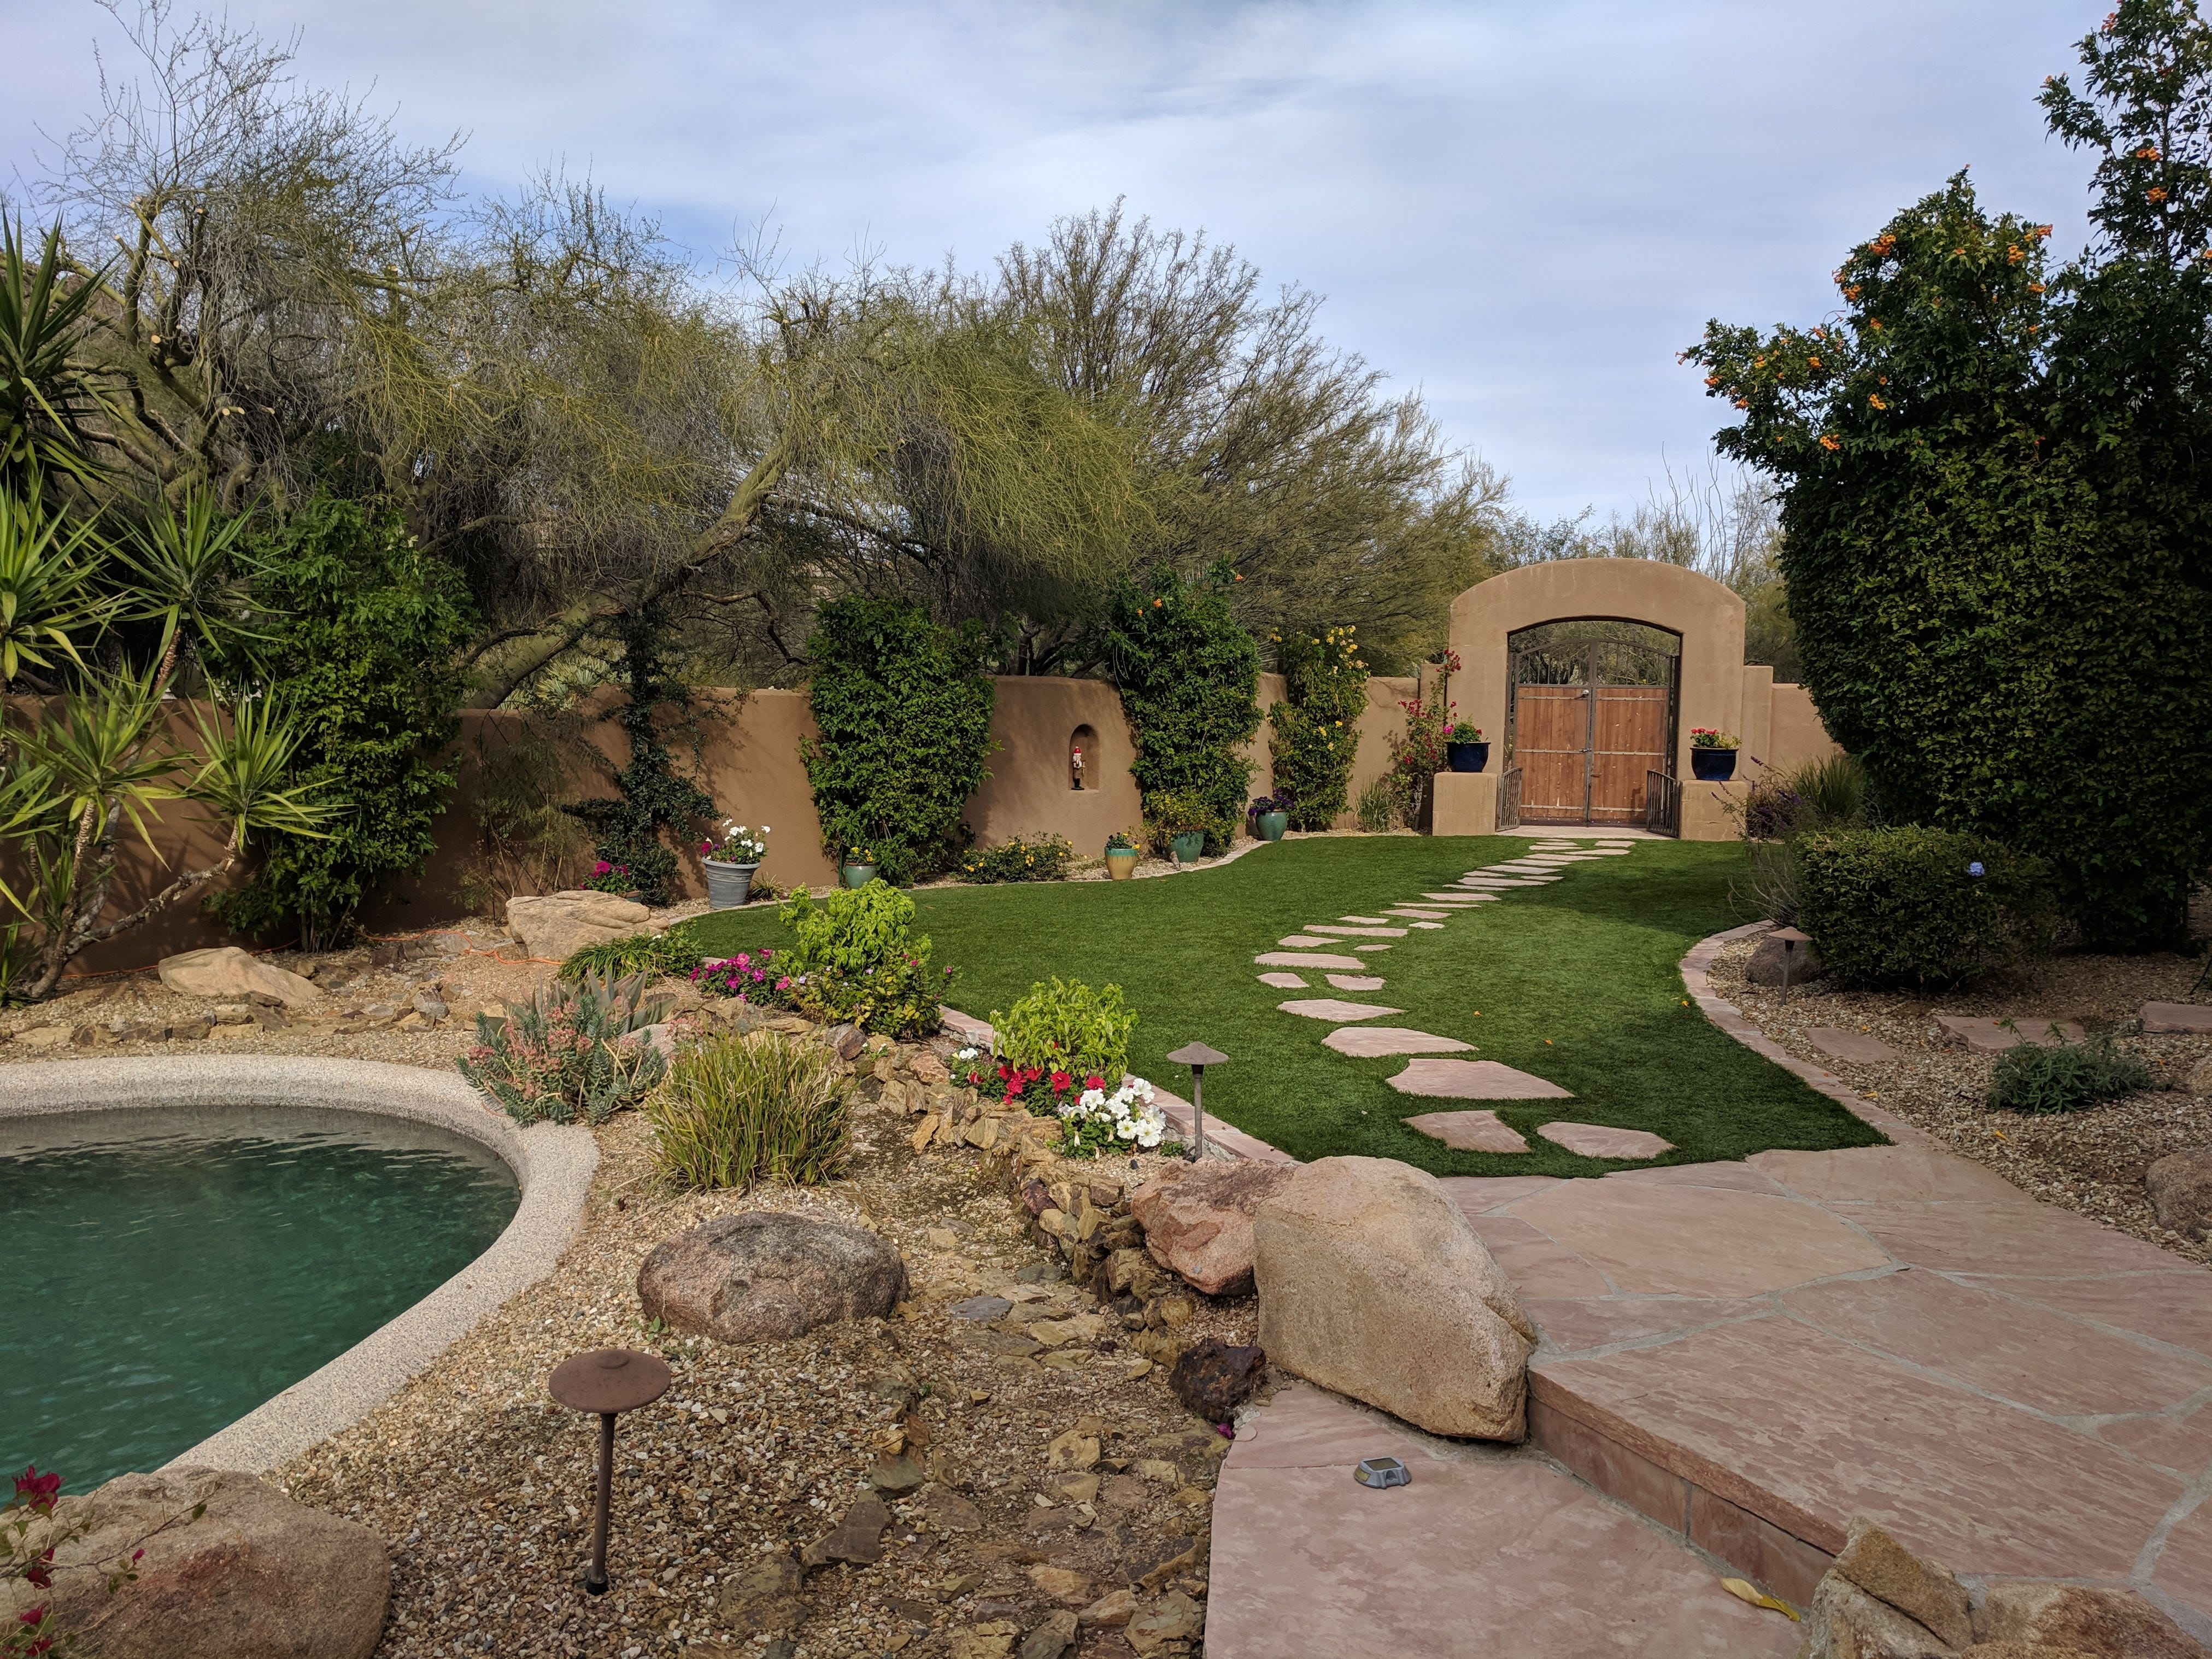 The Reaveses renovated their front yard to remove cactuses and lay artificial turf, which is more dog-friendly for Harry and Caray.